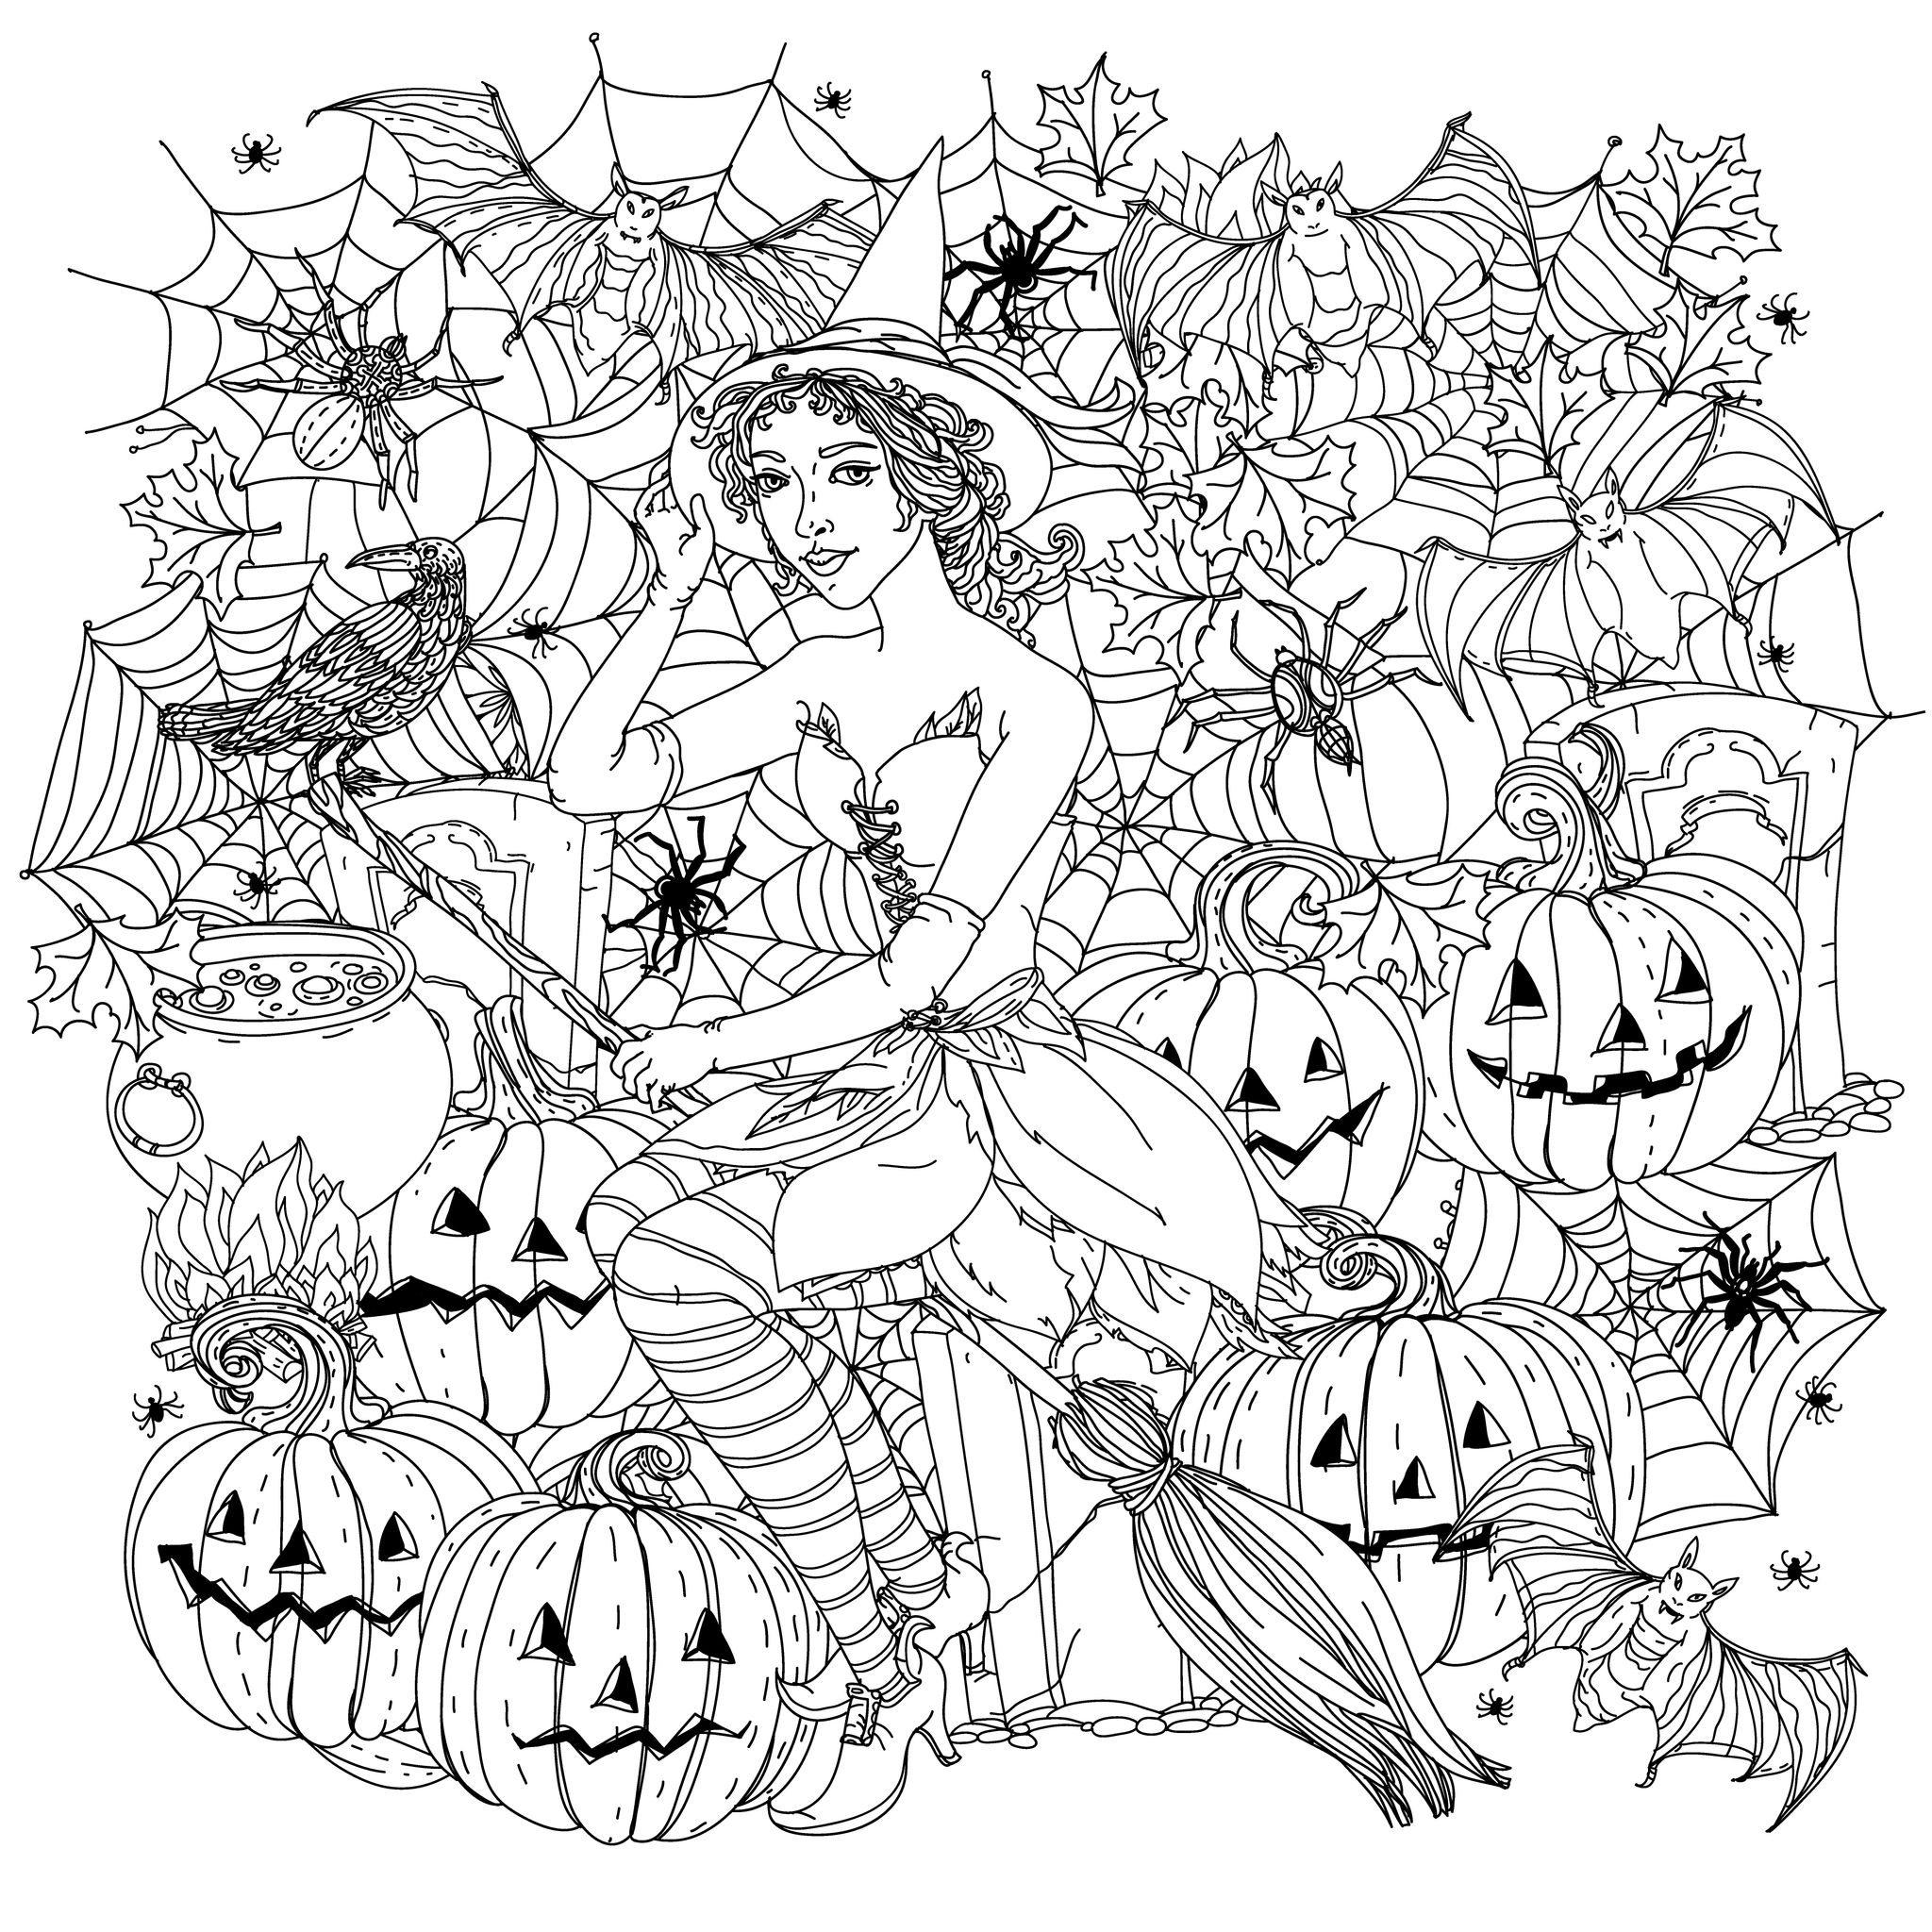 coloring printable witch childrens halloween witch costumes coloring page for witch coloring printable